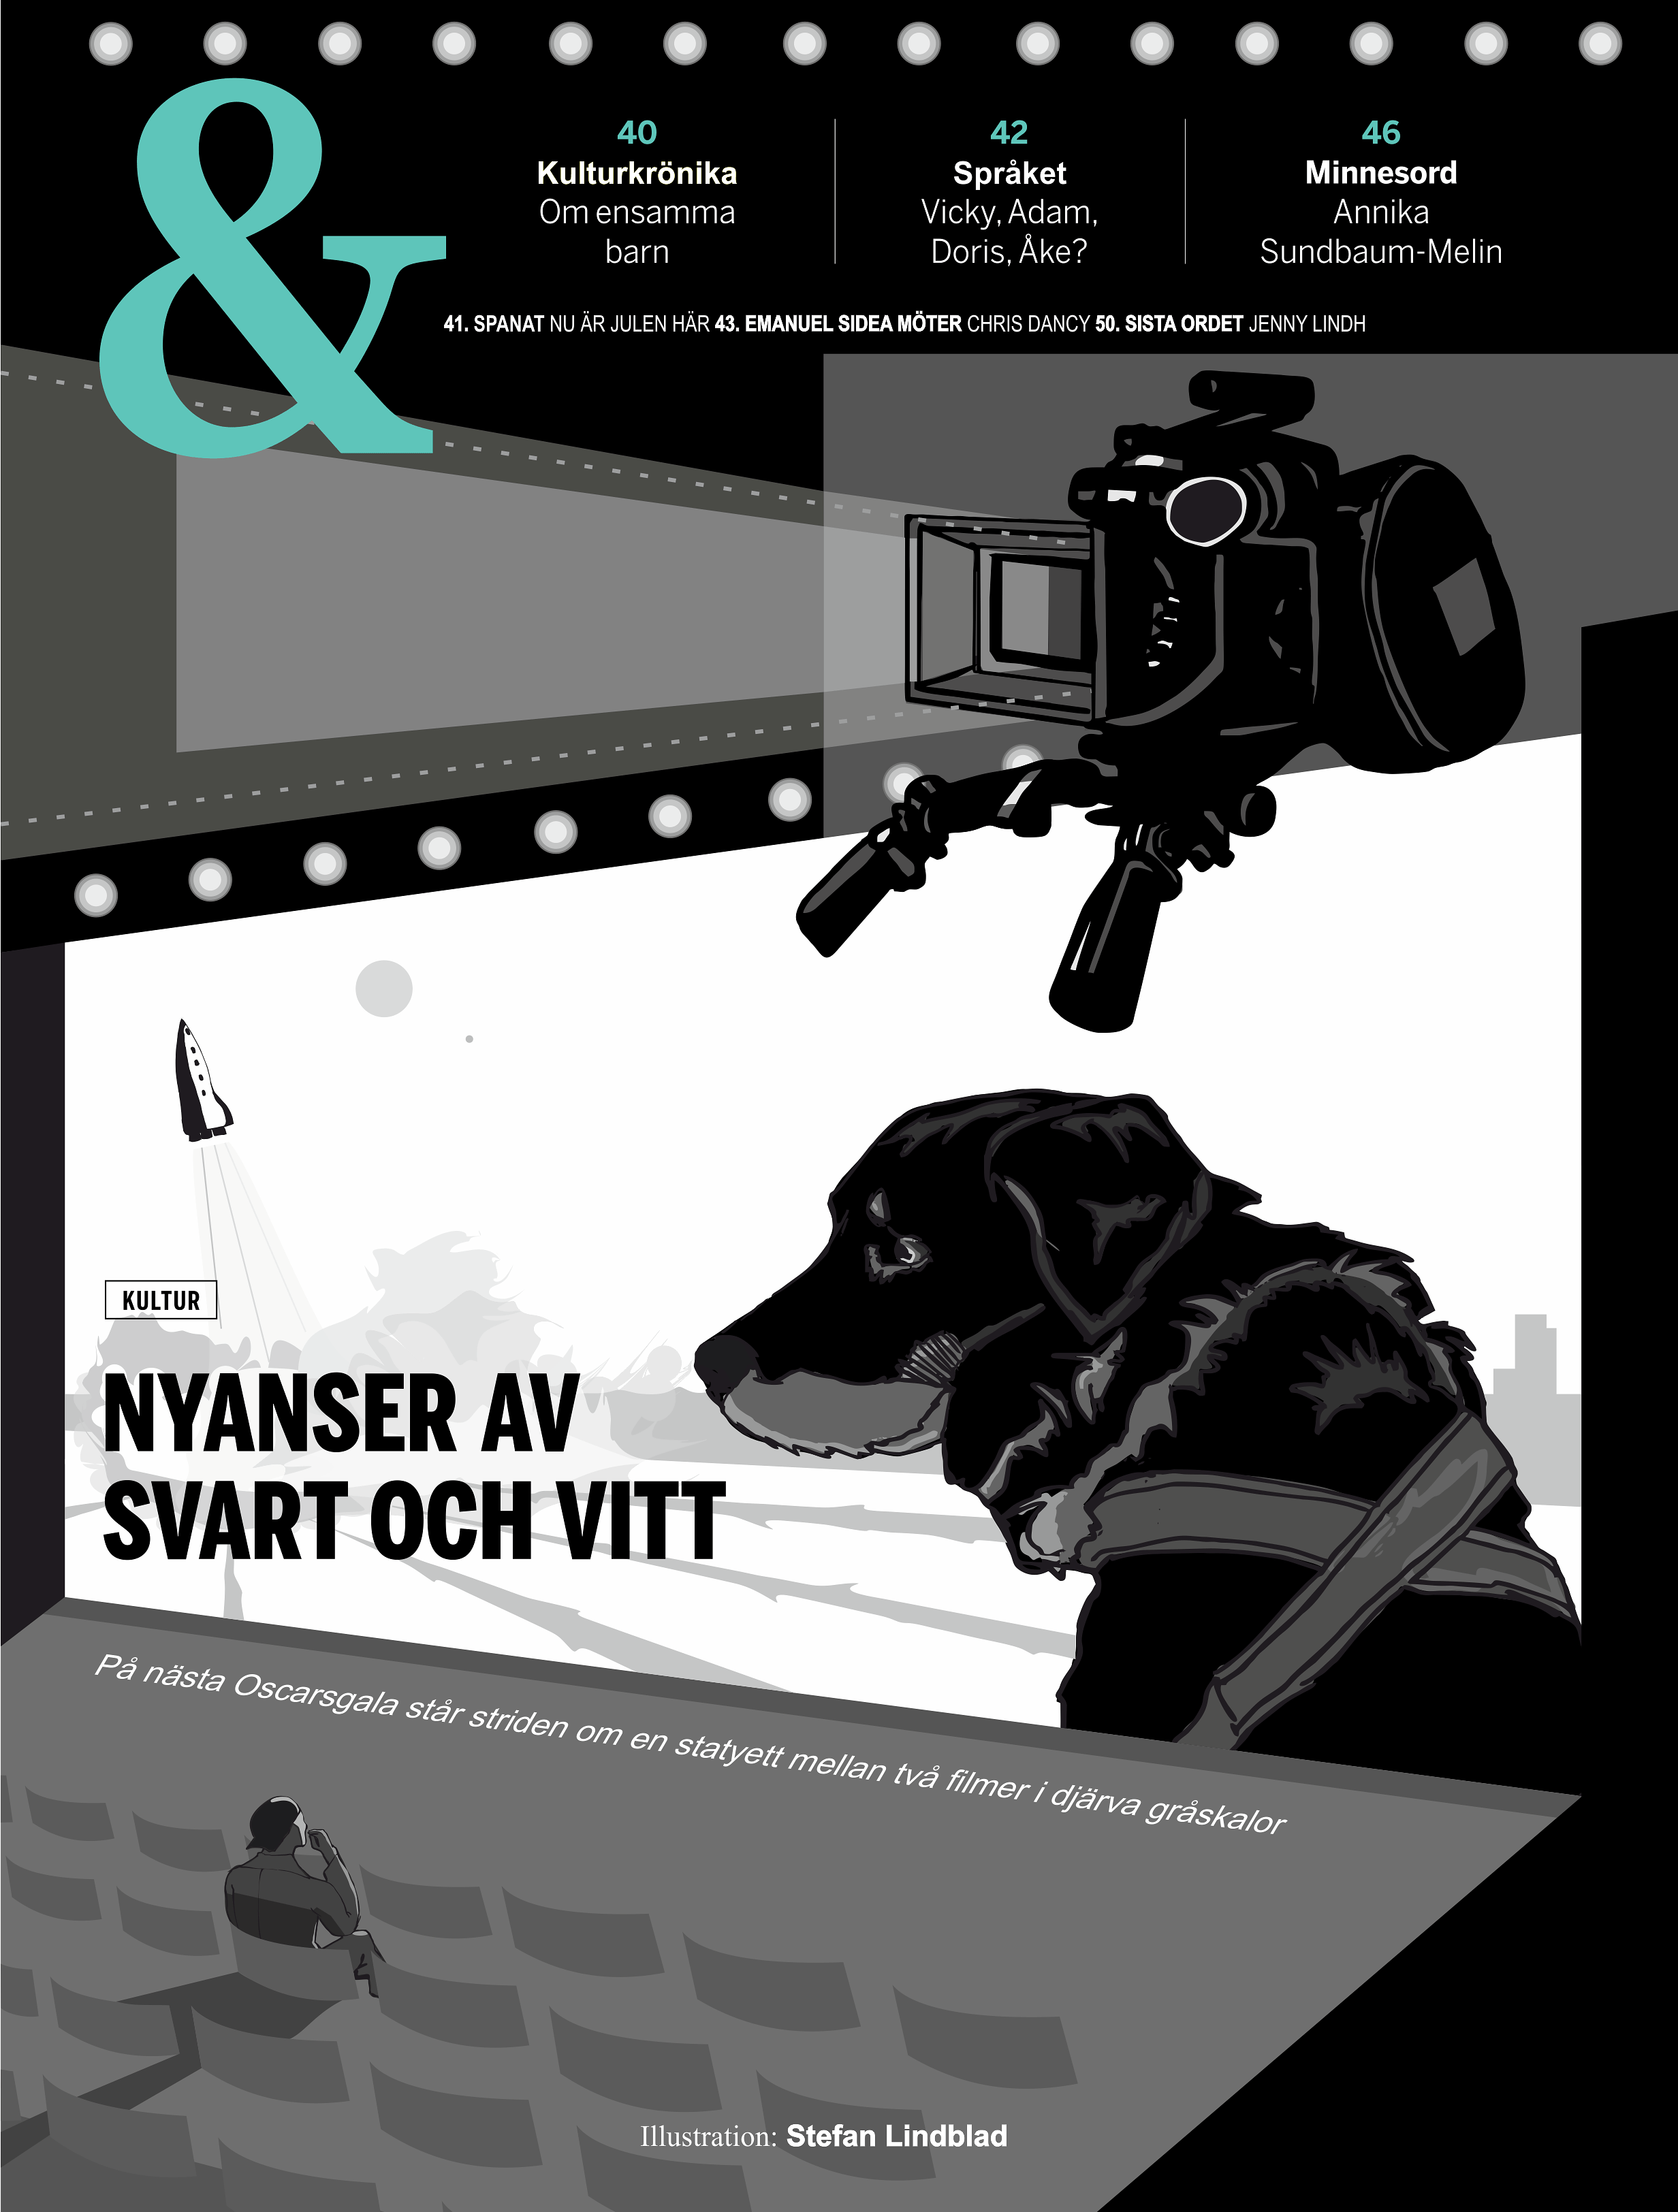 Illustratör, Illustrator, Stefan Lindblad, CorelDRAW Tidningen Fokus, nyhetstidningen, illustration, november, 2018